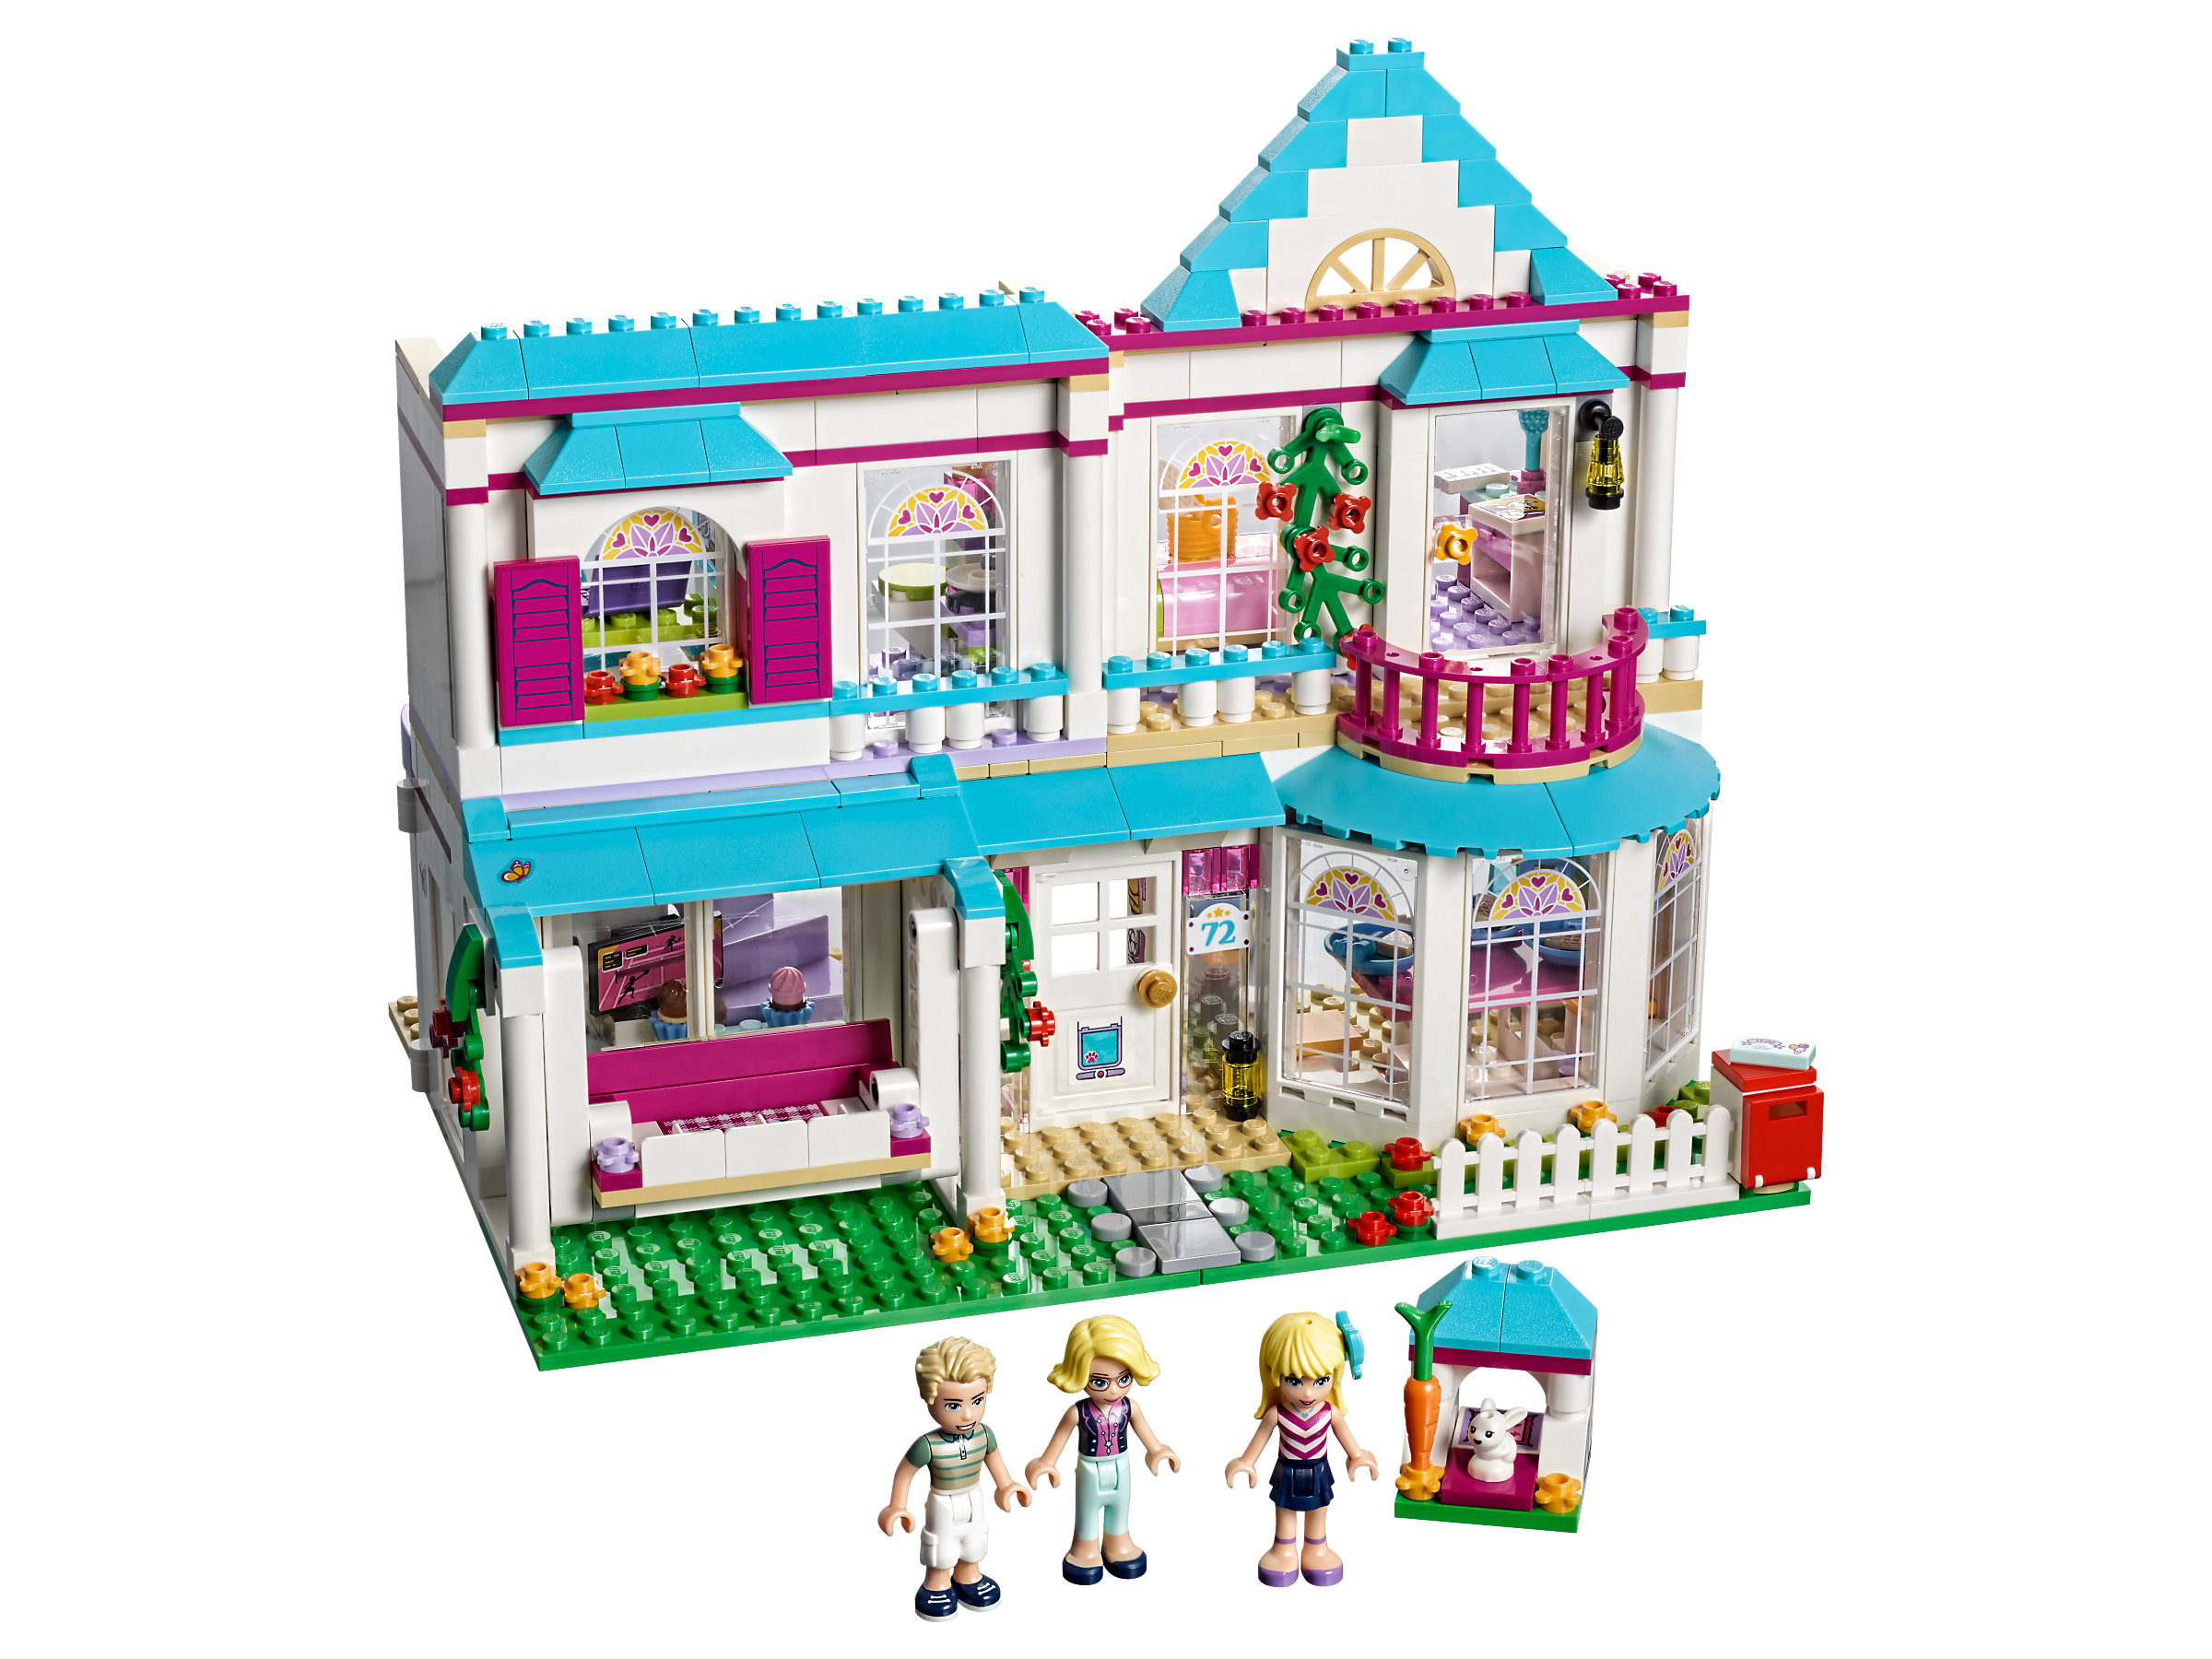 Lego Friends Badezimmer Stephanies Haus 41314 1